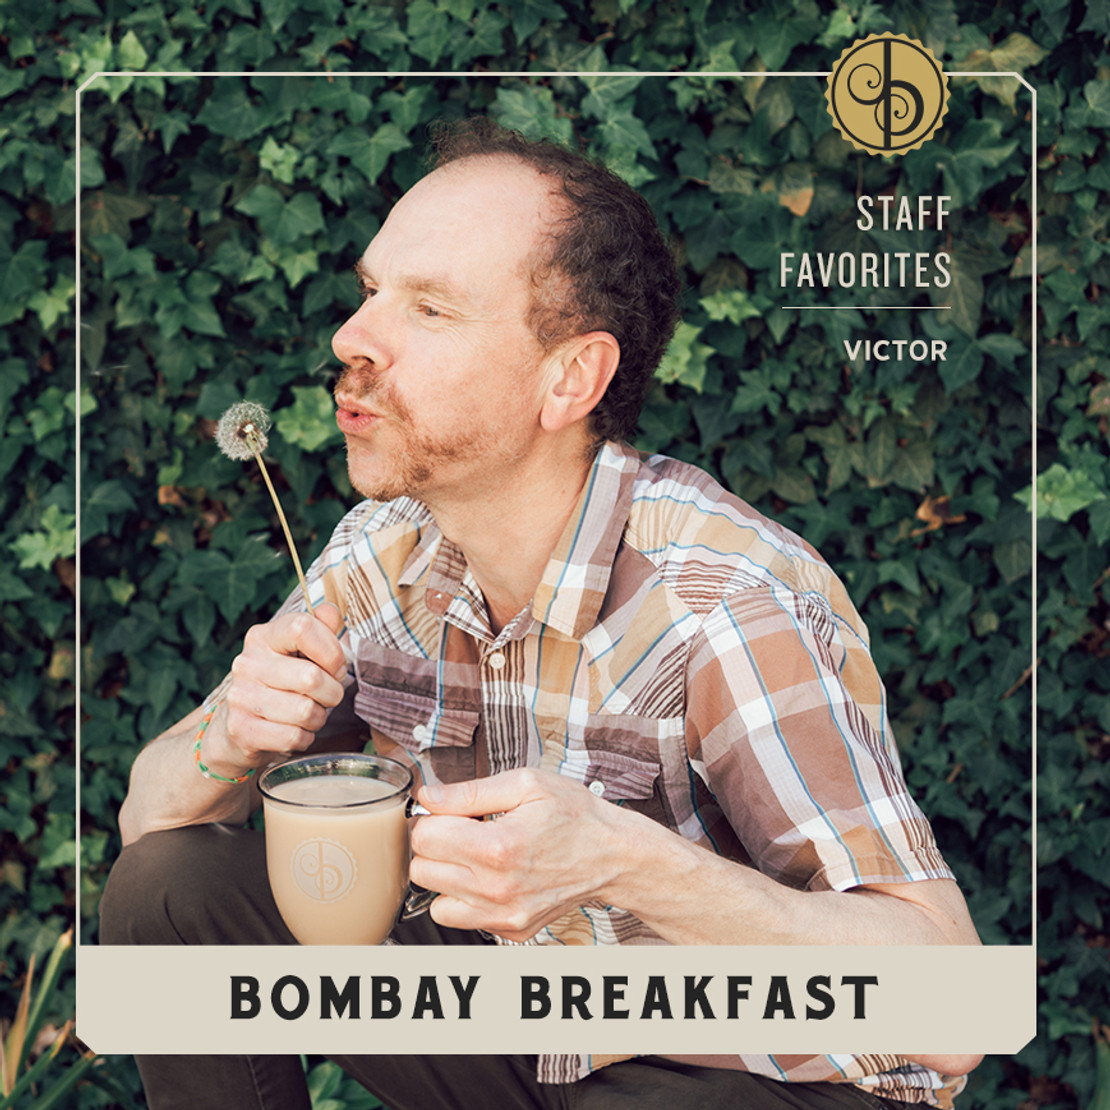 Staff Favorites: Victor & Bombay Breakfast